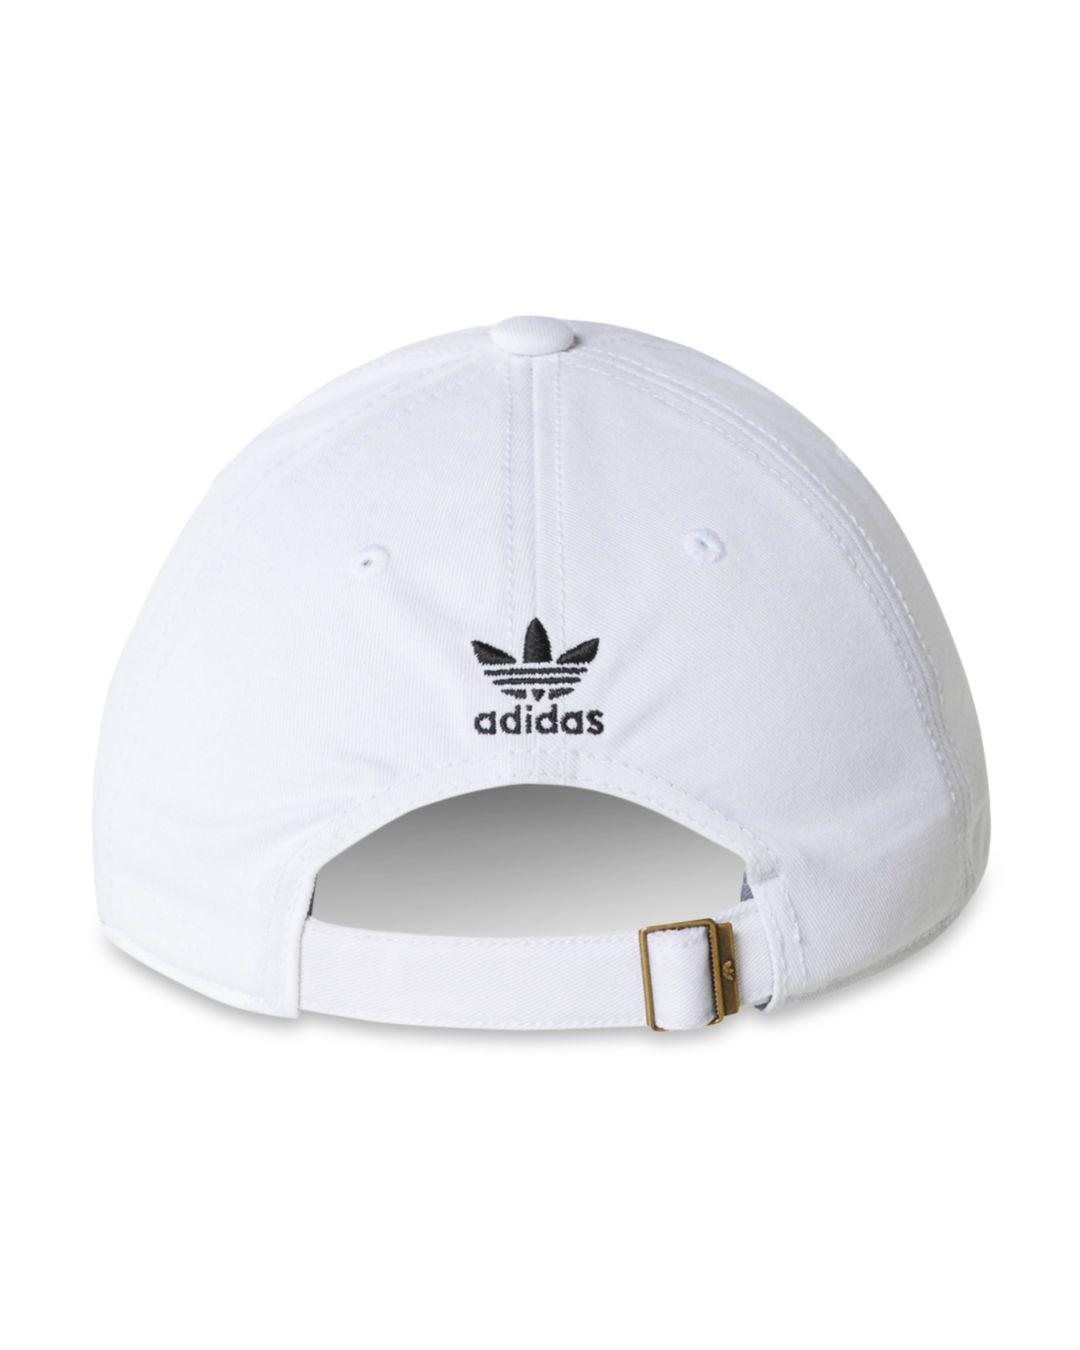 4f9644b04e2 adidas Originals Relaxed Strapback Cap in White for Men - Save 53% - Lyst